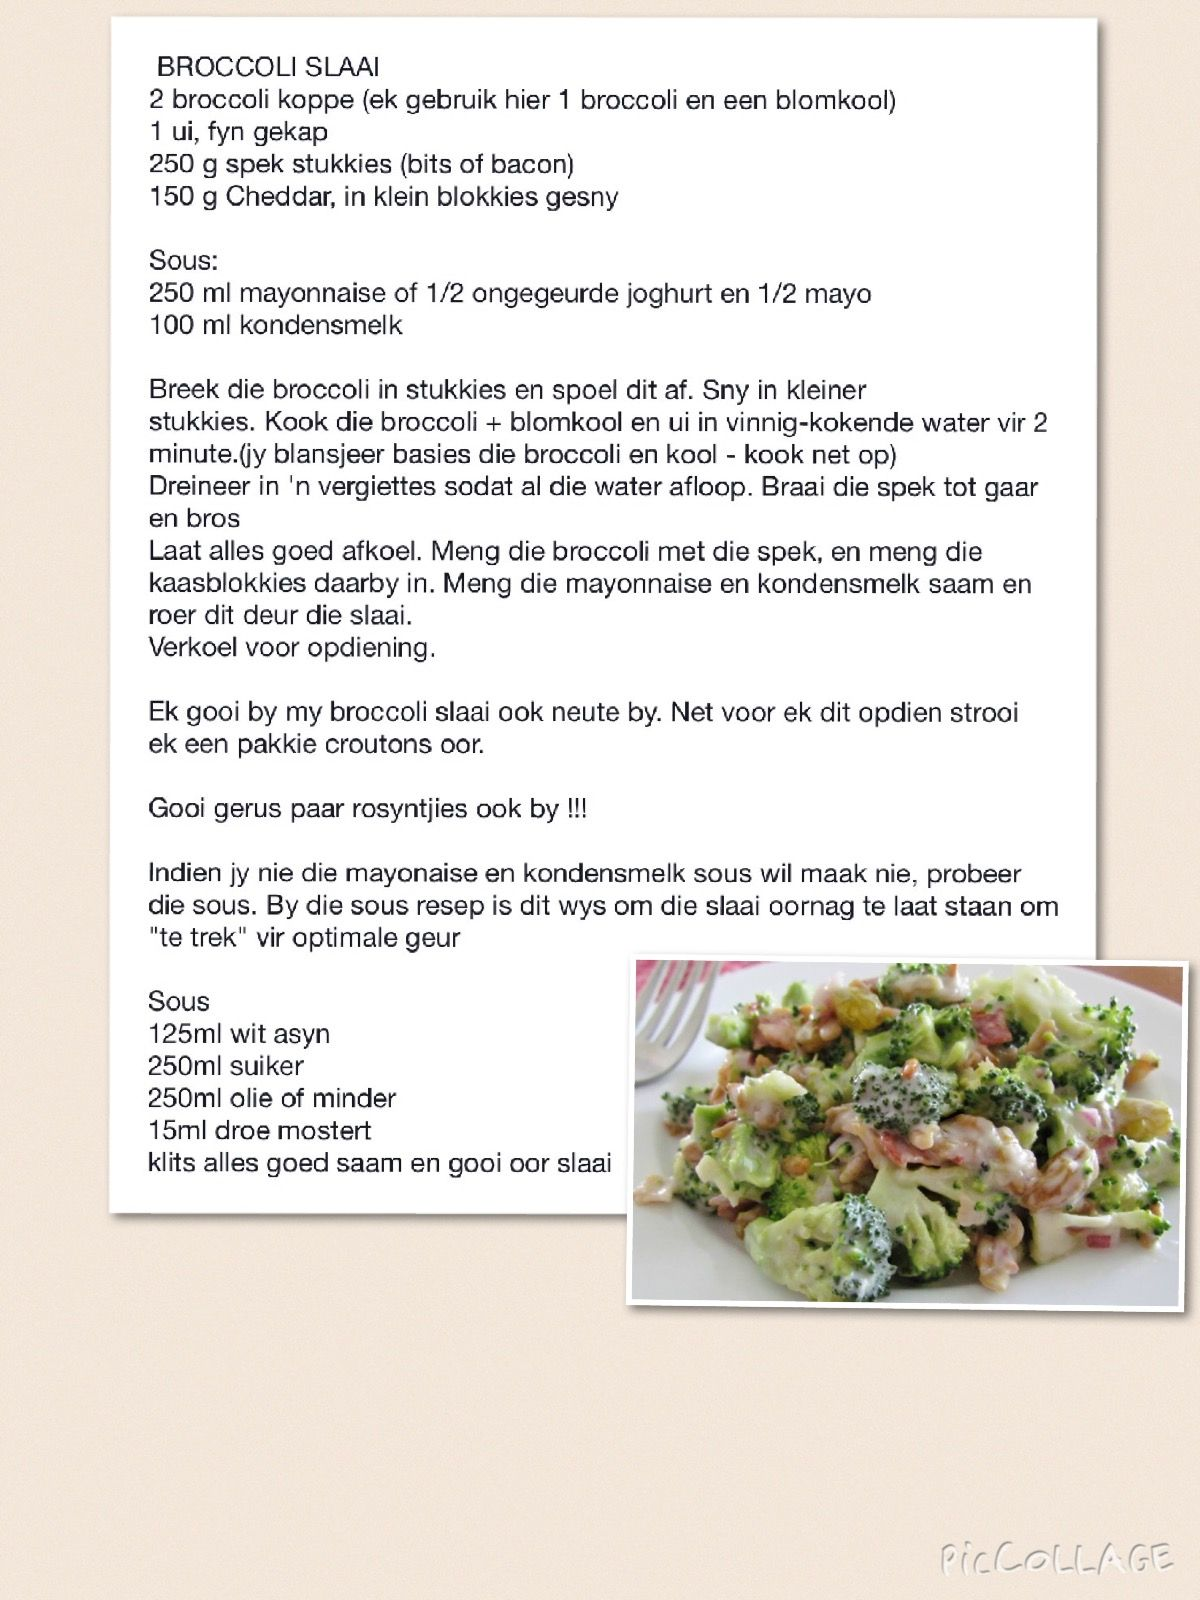 Broccoli Slaai Summer Salad Recipes Recipes Braai Recipes